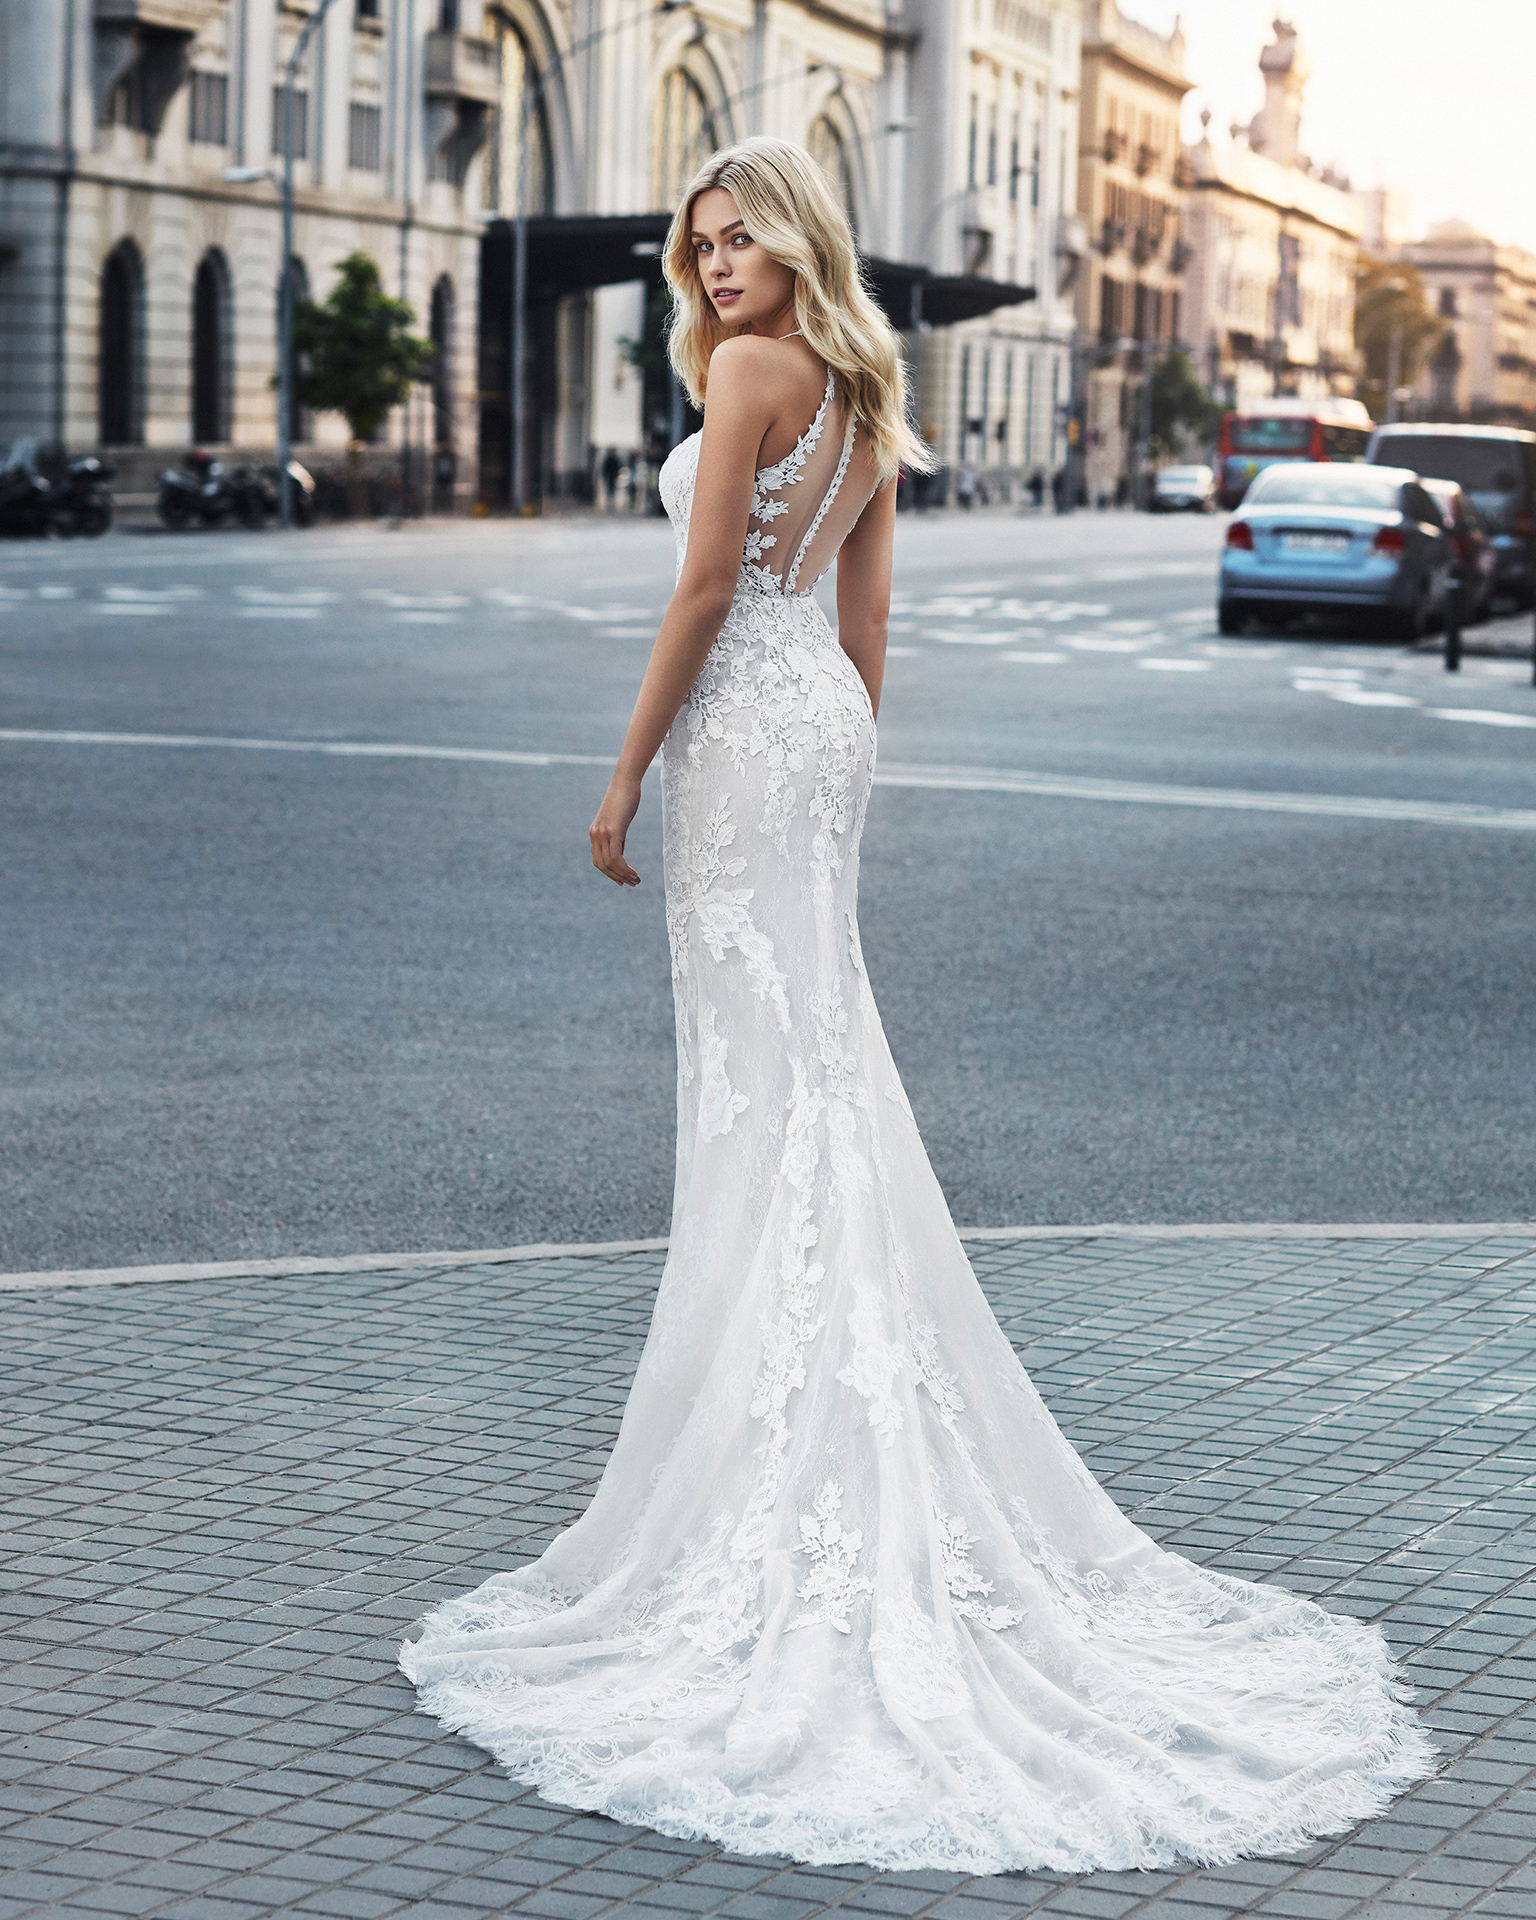 Mermaid-style wedding dress in beaded lace. V-neckline and appliquéd skirt. Available in natural and natural/nude. 2019  Collection.